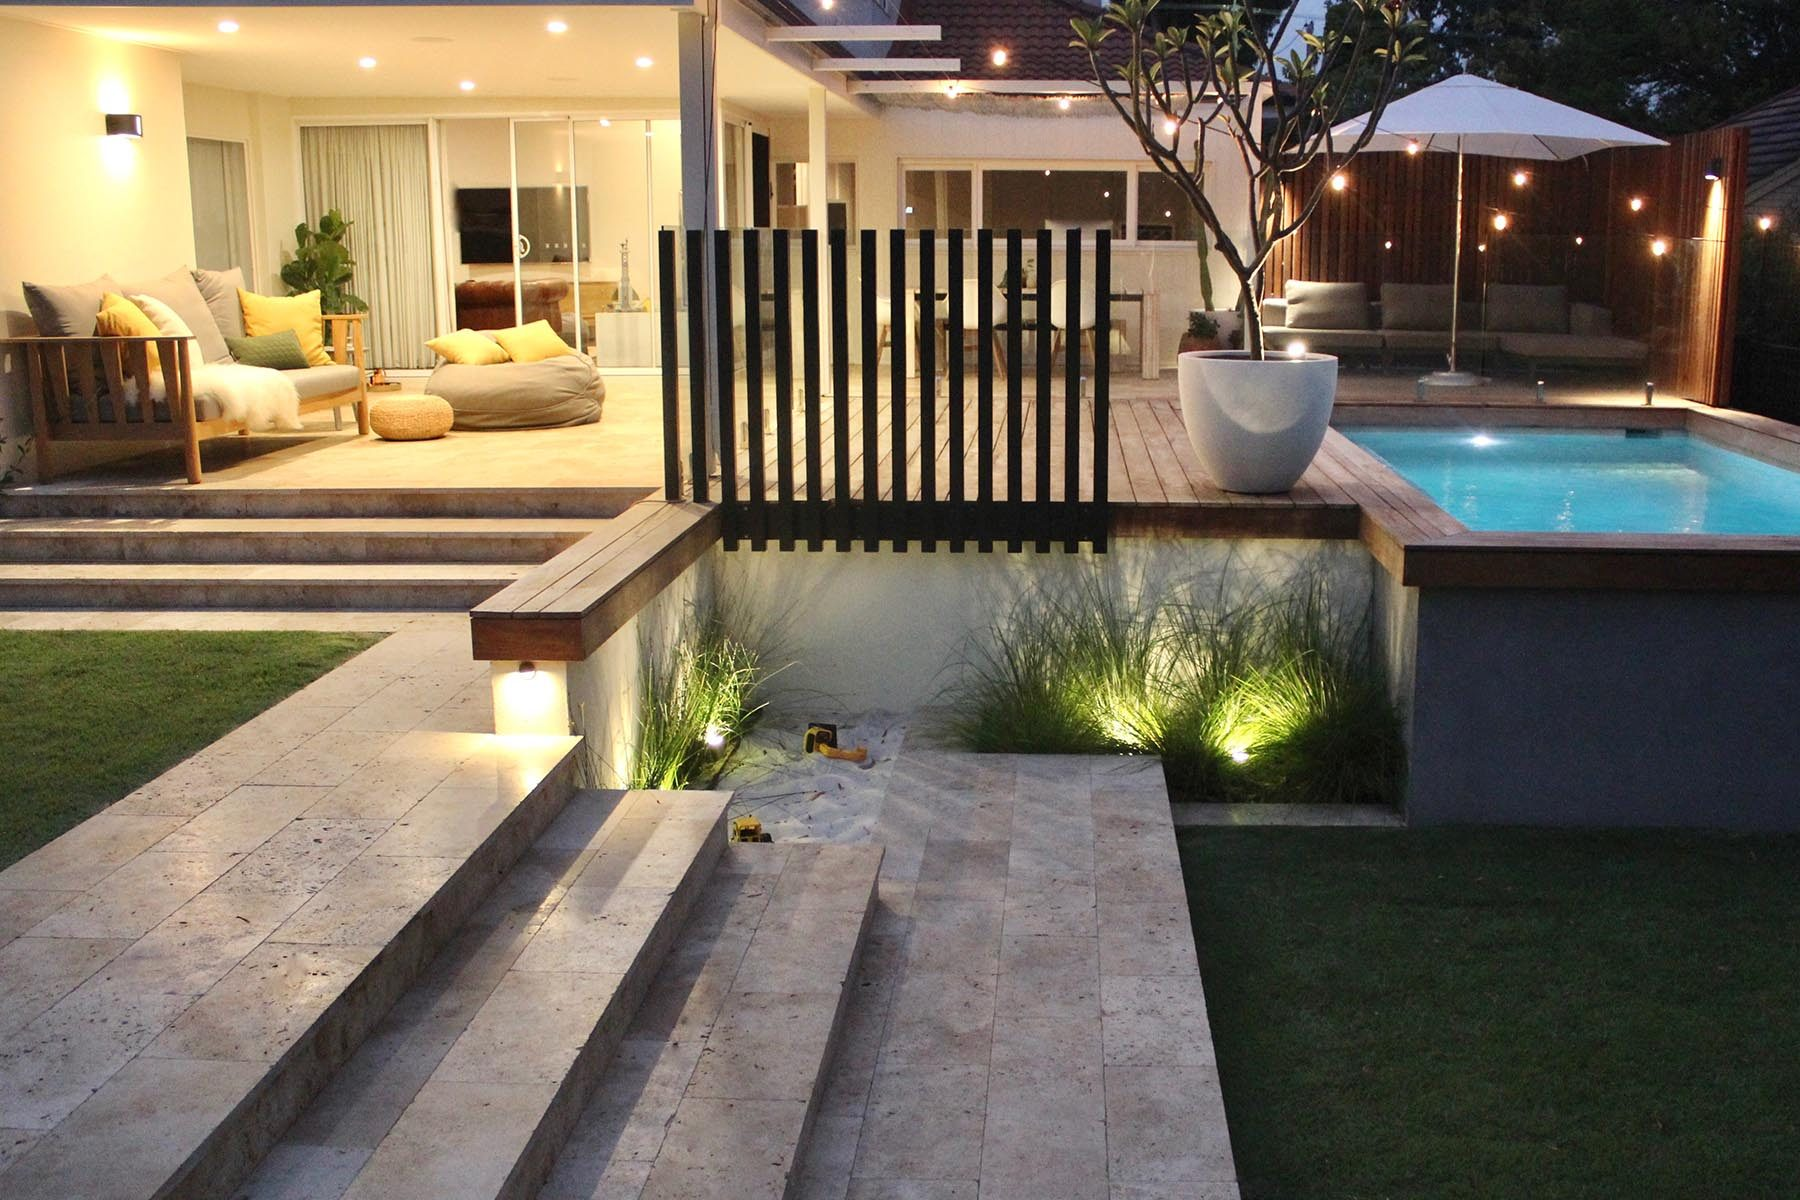 5 Outdoor Renovations That Can Add Value To Your Property